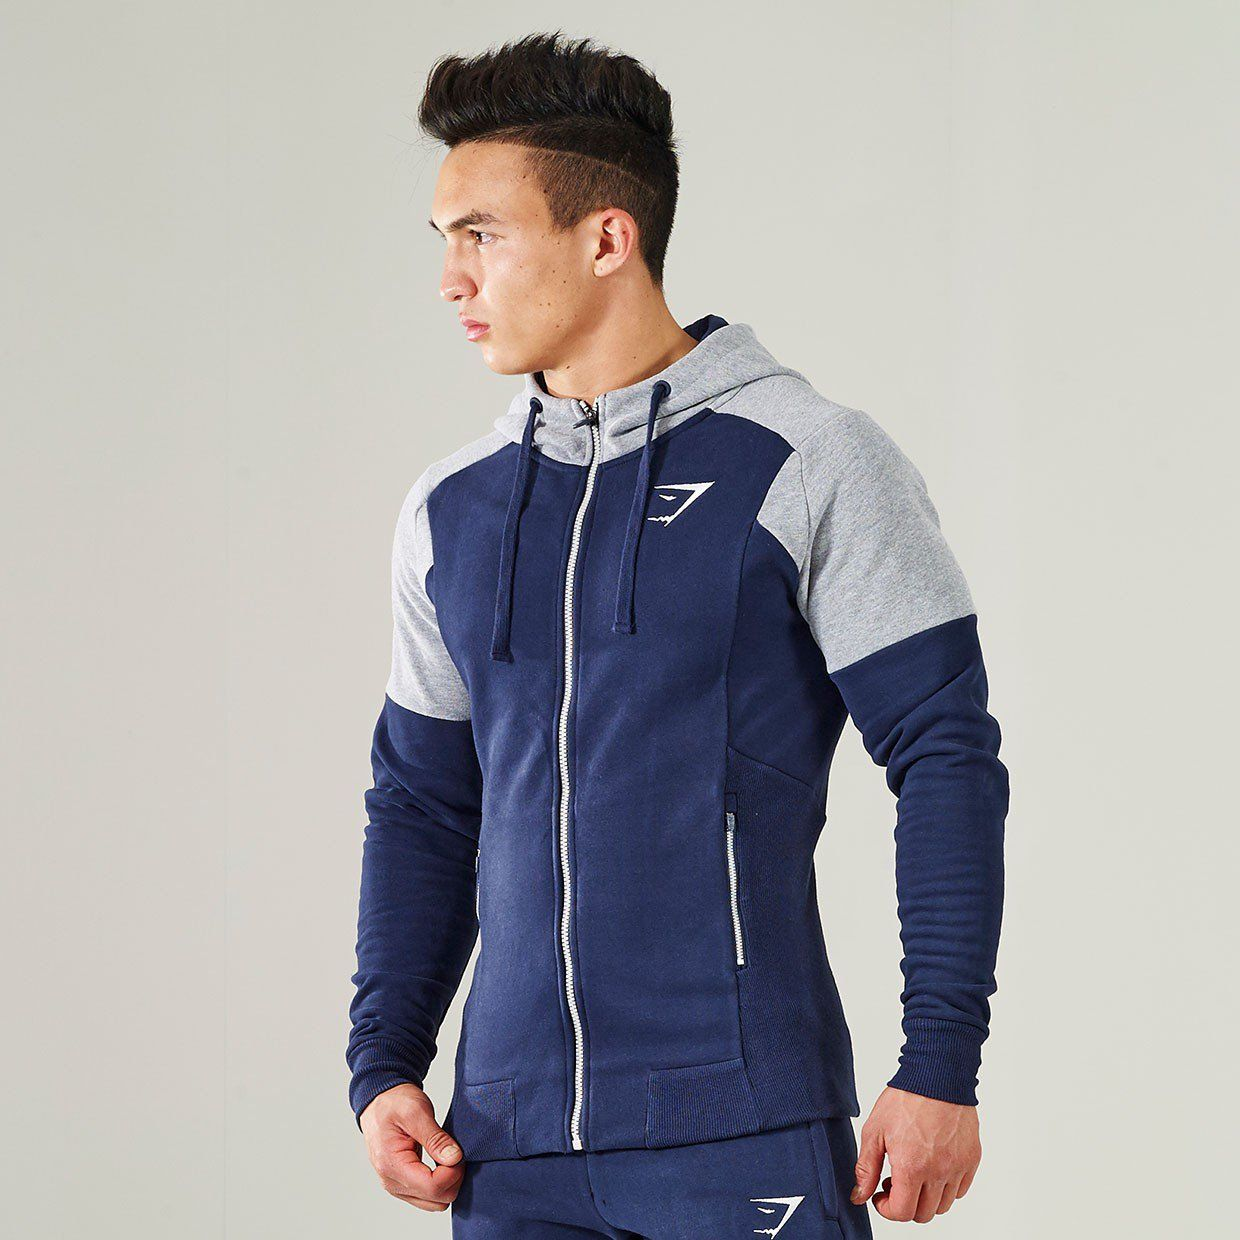 cd065285cefc Gymshark Pioneer Zip Hoodie - Sapphire Blue   Gentlemen s Gym Wear ...